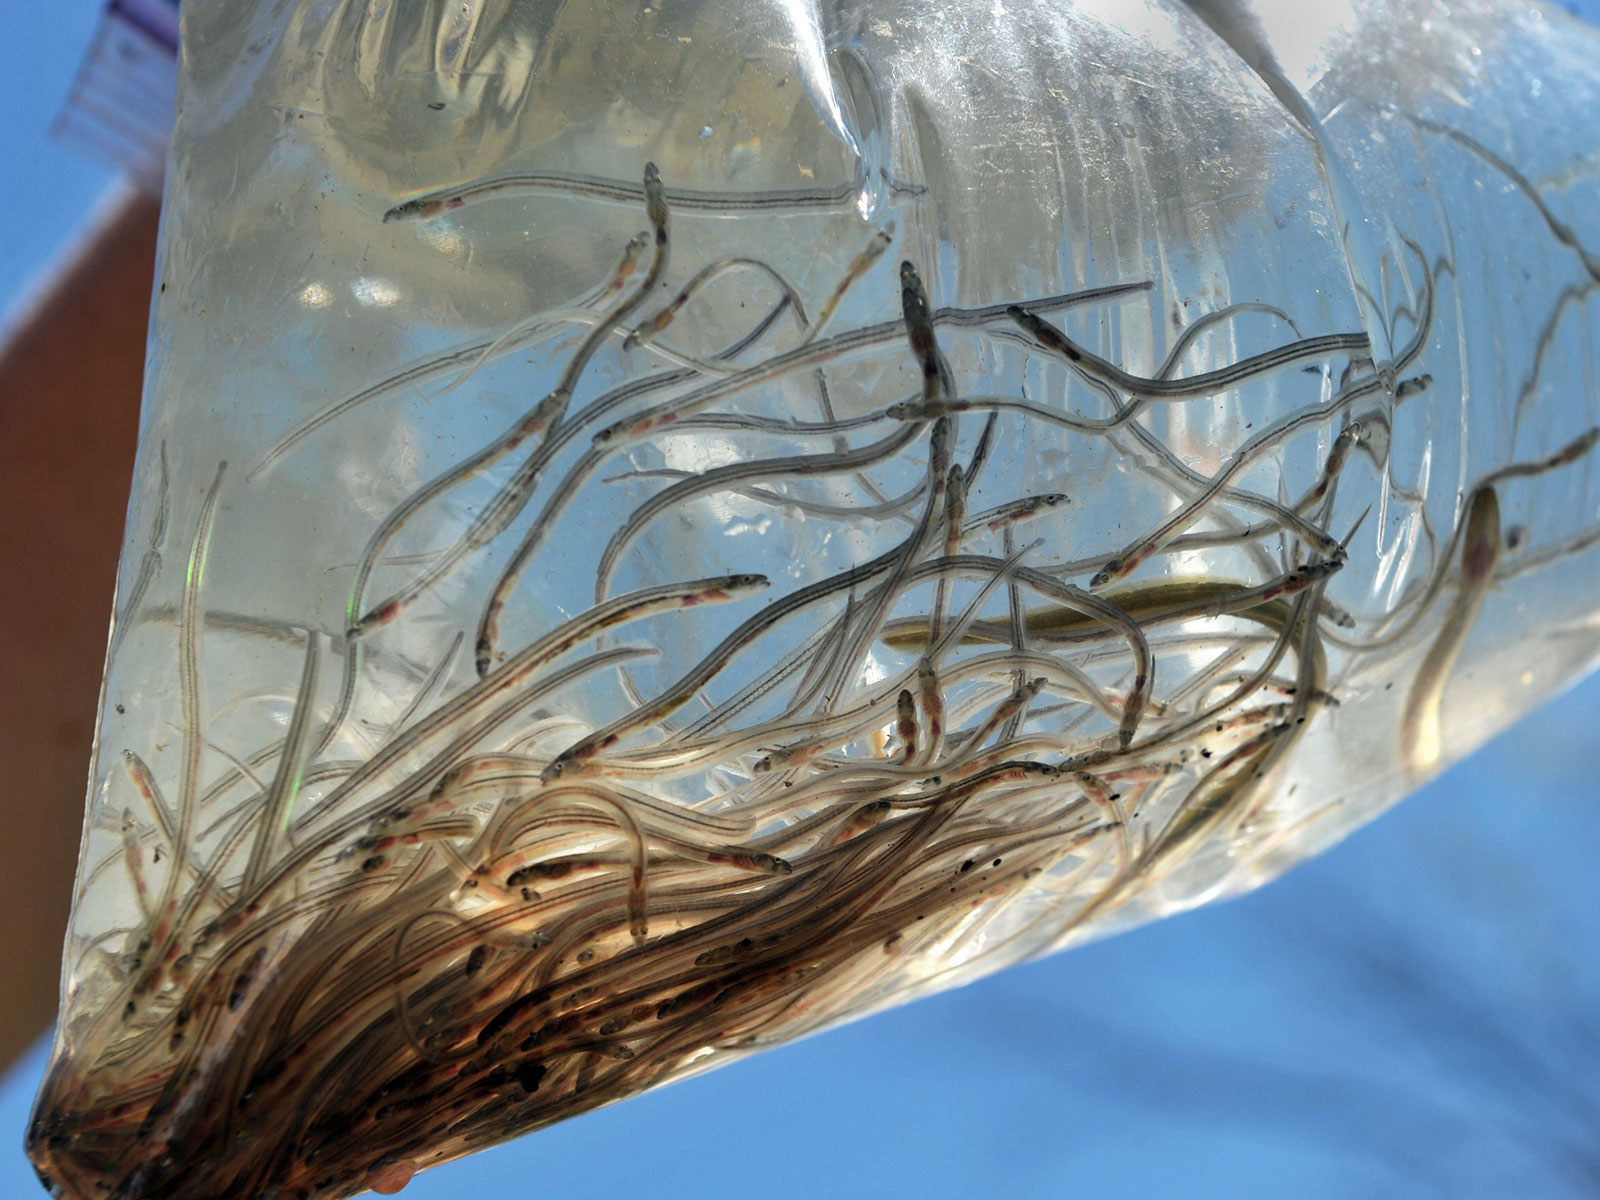 glass-eels-maine-lottery-FT-BLOG0120.jpg